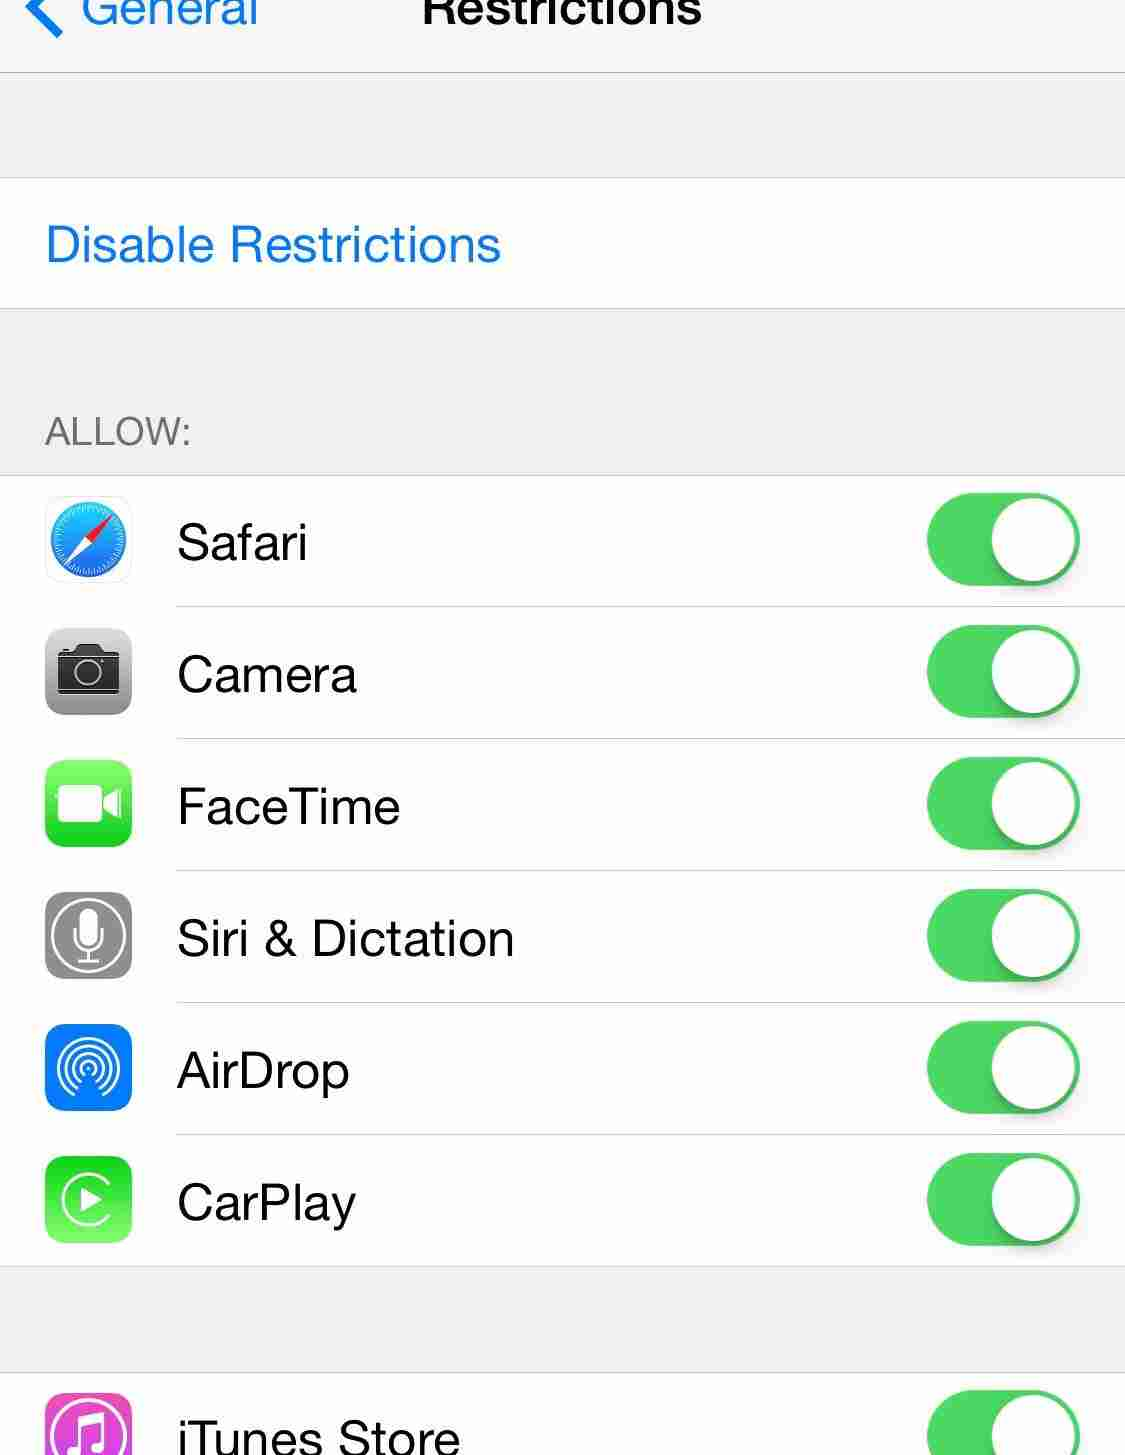 How to enable Parental restrictions on iPhone camera and Siri